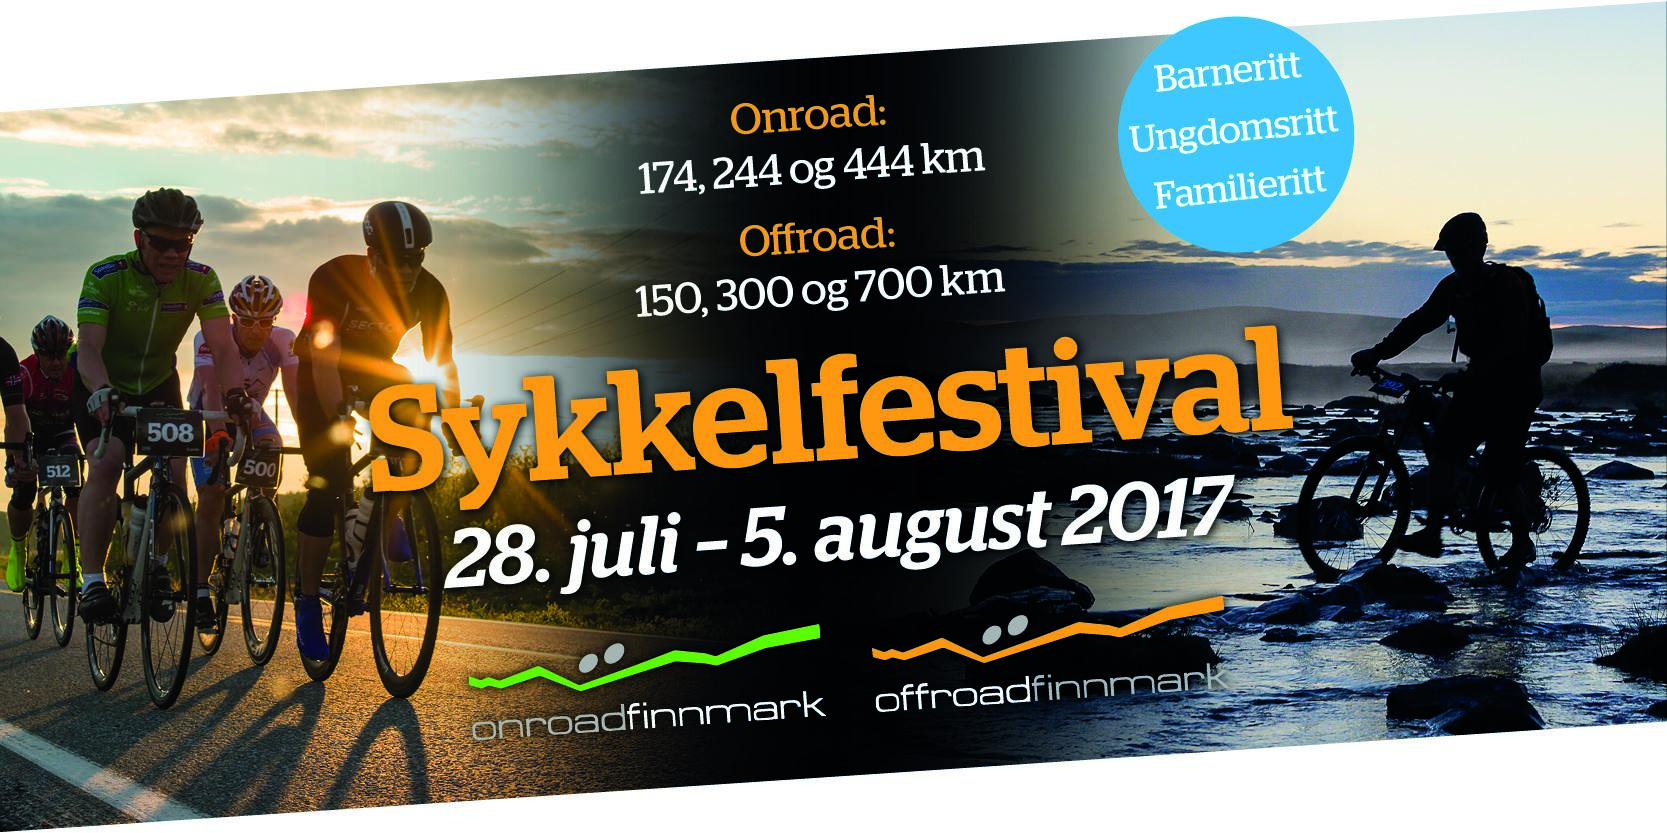 Bike festival Onroad and Offroad Finnmark 28th of July – 5th of August 2017